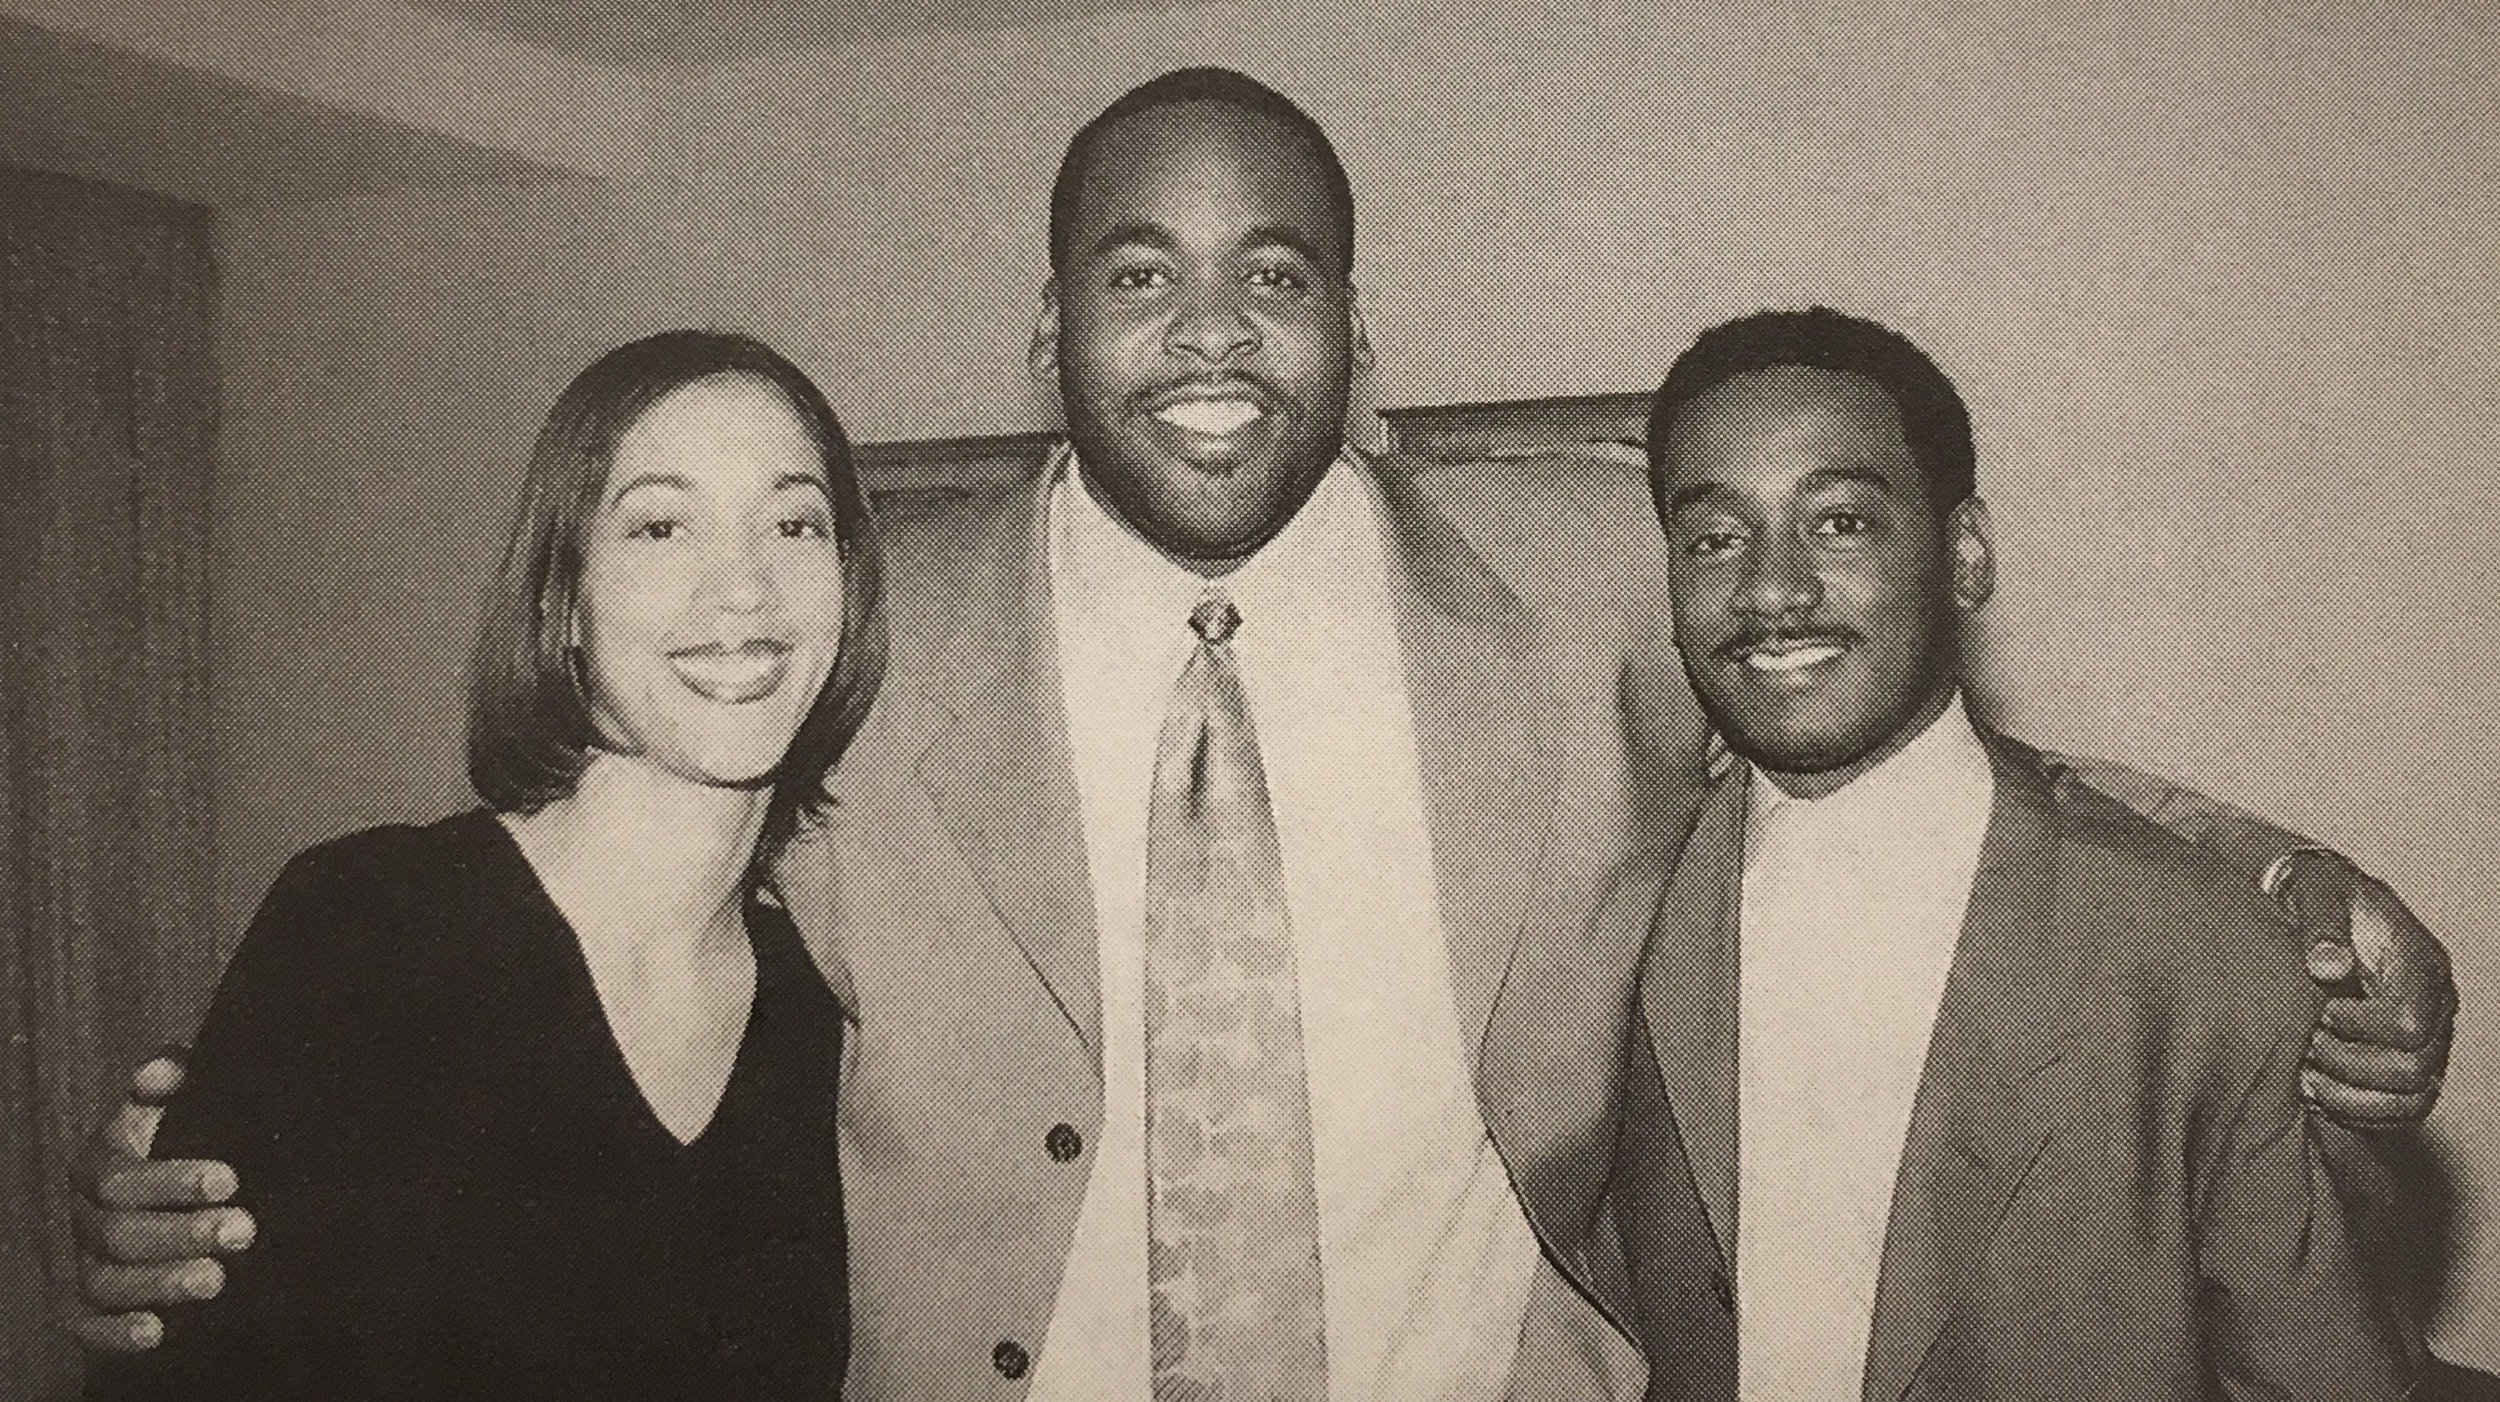 Christine (née Rowland) Beatty, Kwame Kilpatrick, and Derrick Miller were close friends when they attended Cass Tech. After Kwame was elected mayor, he appointed Christine as his chief of staff, and Derrick as his chief administrative officer.  Courtesy of Kwame Kilpatrick.